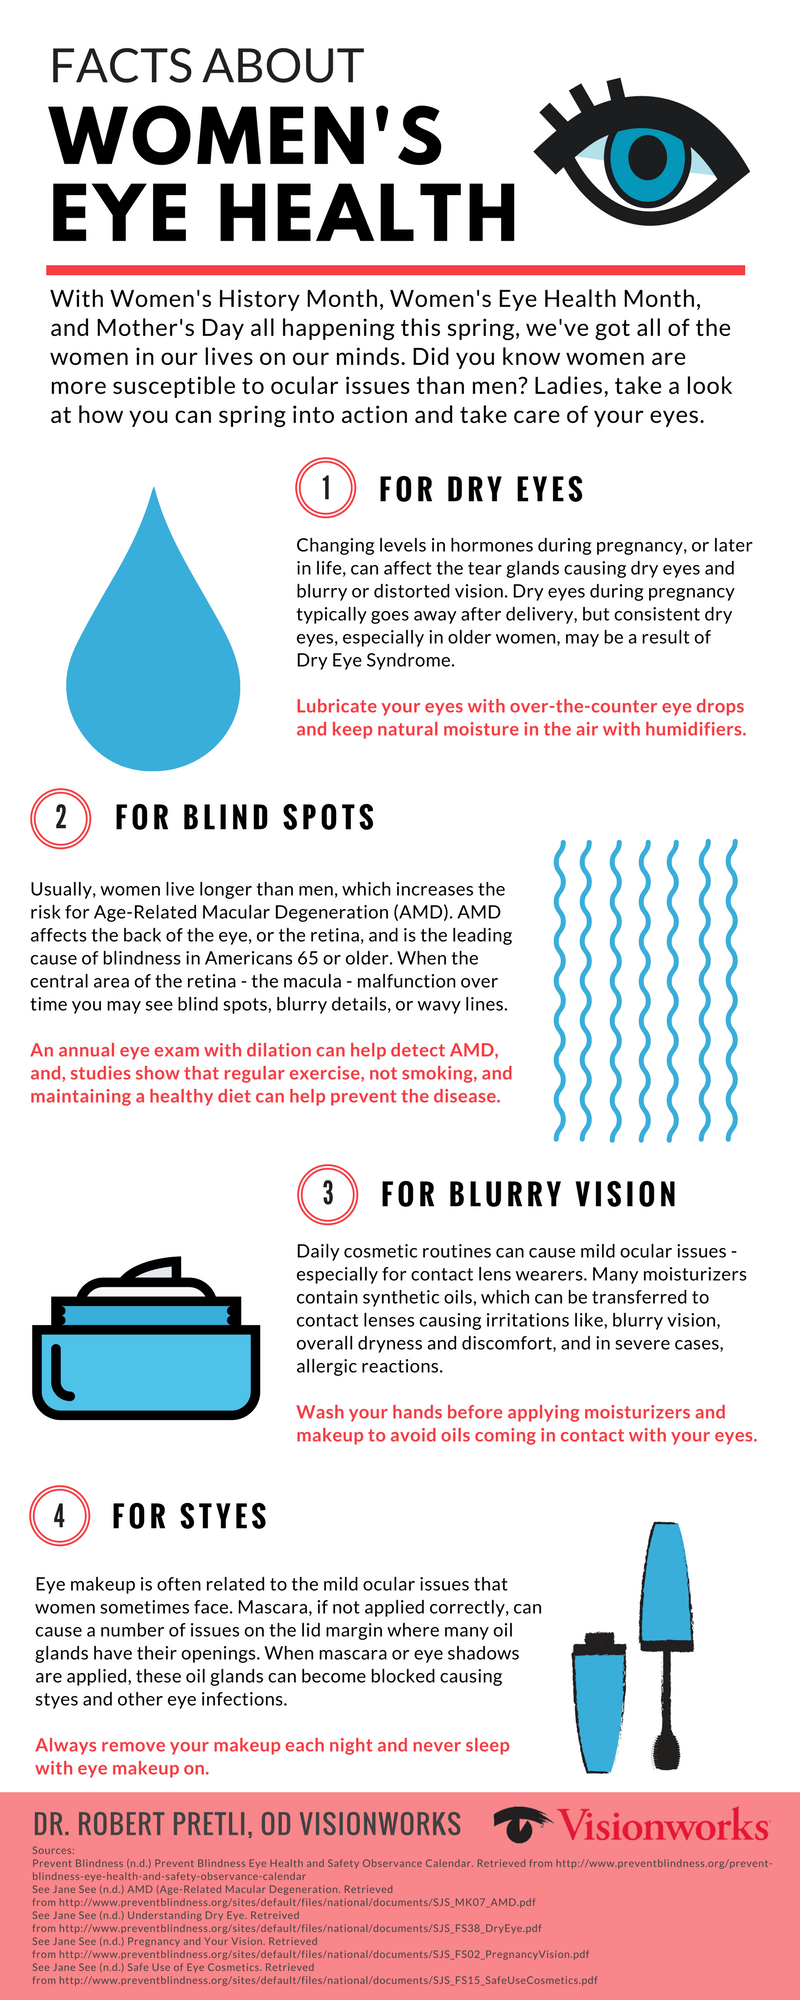 With Women's Eye Health Month, Women's History Month and Mother's Day all happening this spring, I thought it would be the perfect time to bring awareness to these facts about women's eye health.